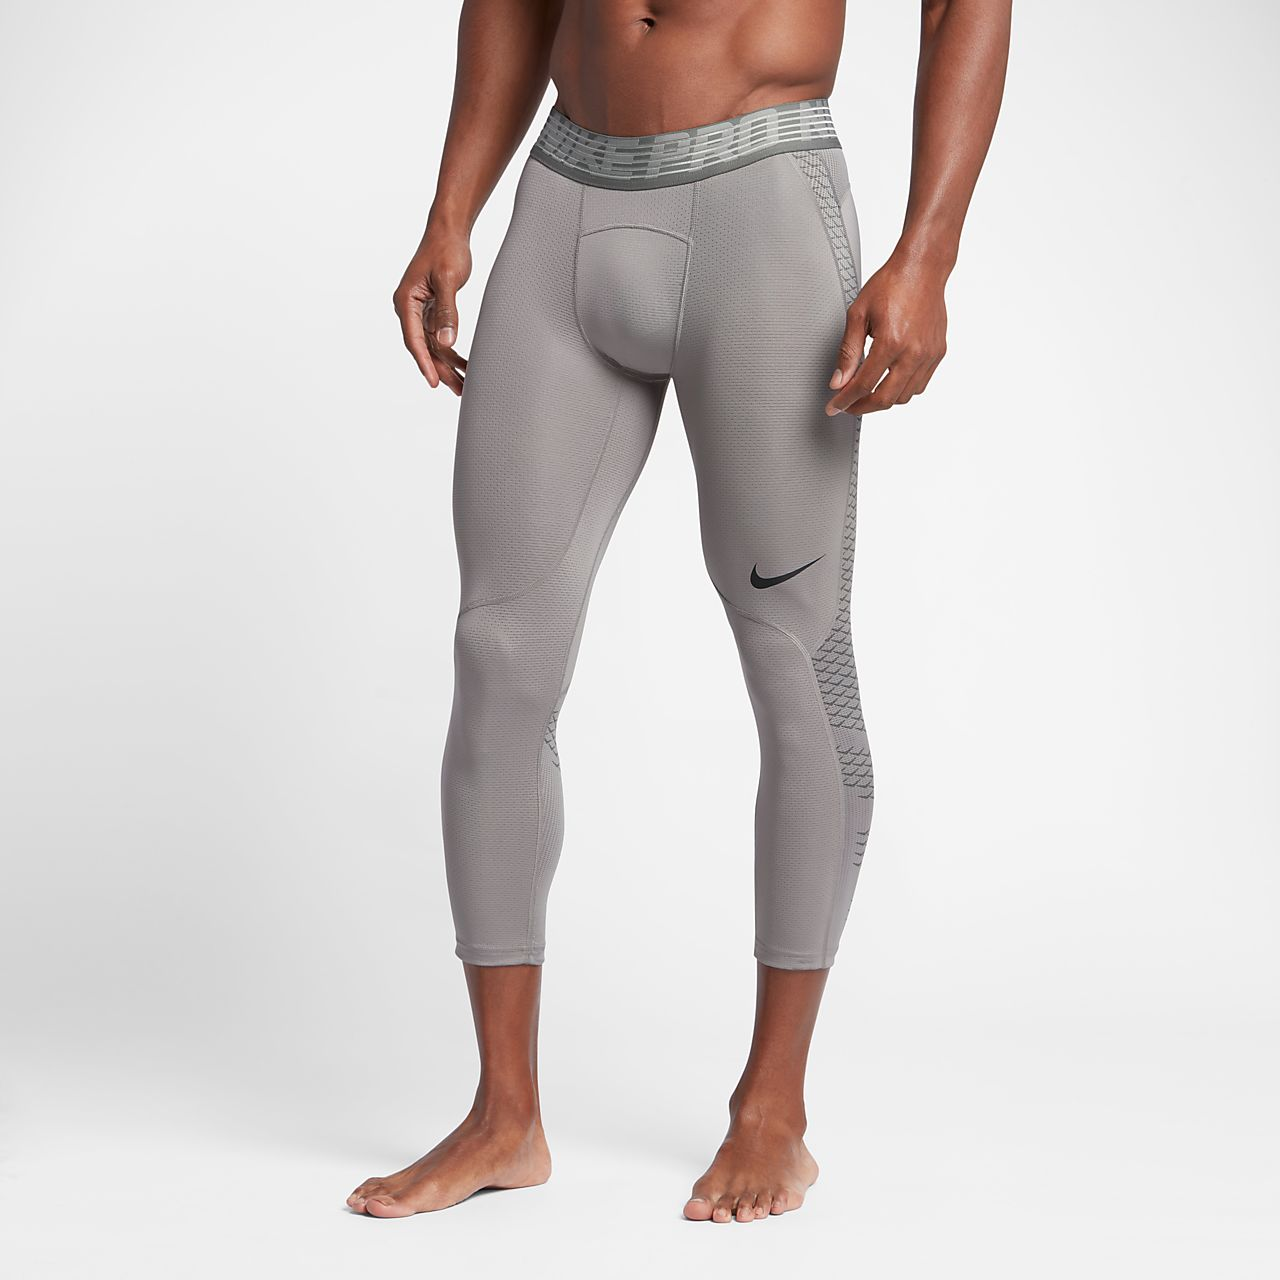 Free shipping BOTH ways on leggings pants mens, from our vast selection of styles. Fast delivery, and 24/7/ real-person service with a smile. Click or call